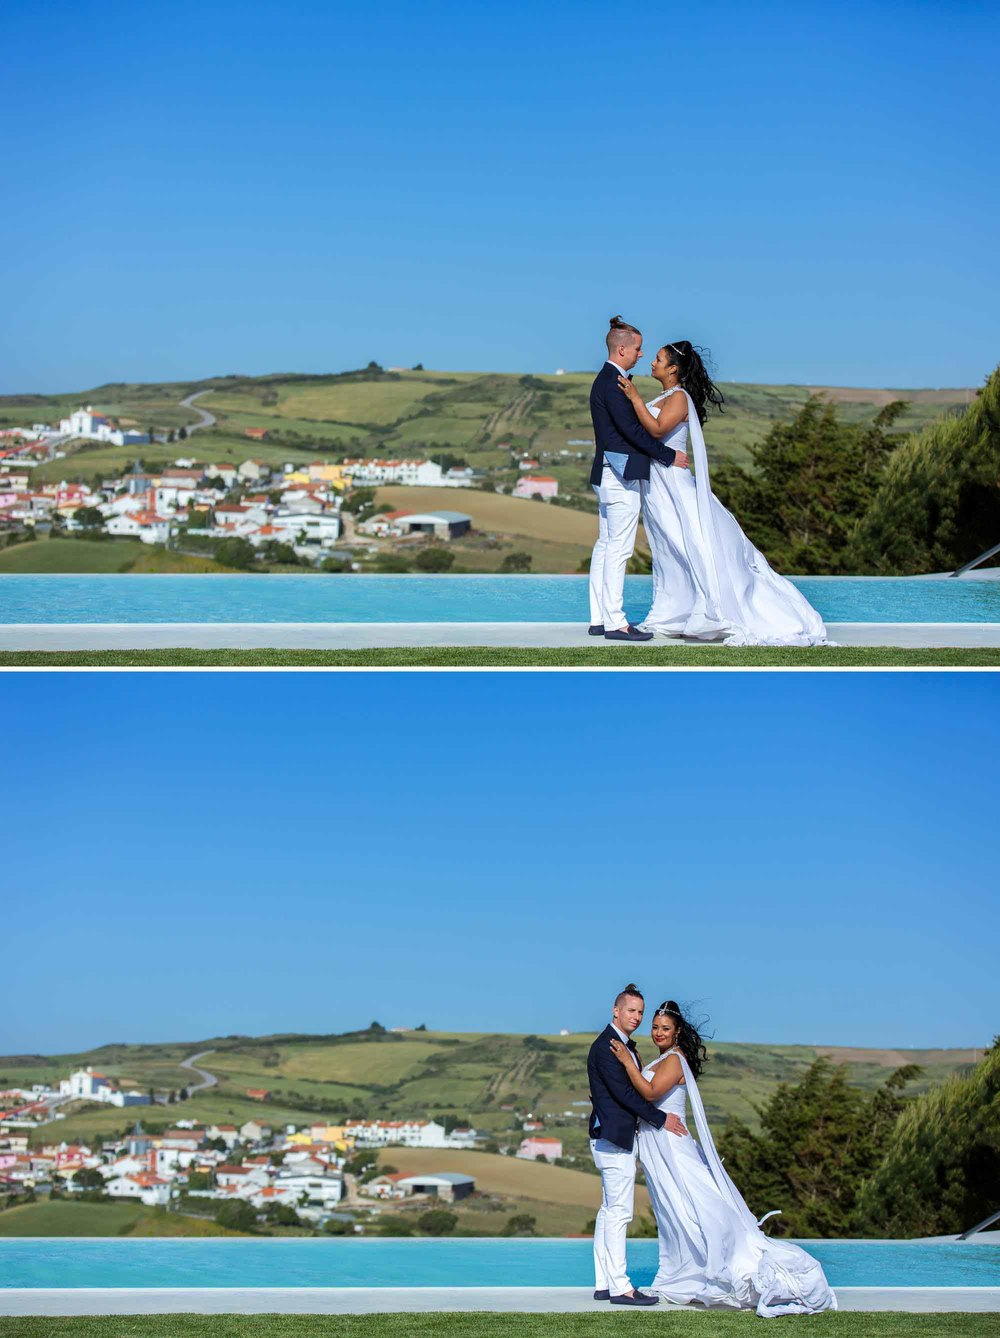 Portugal-Wedding-Photographer-110.jpg